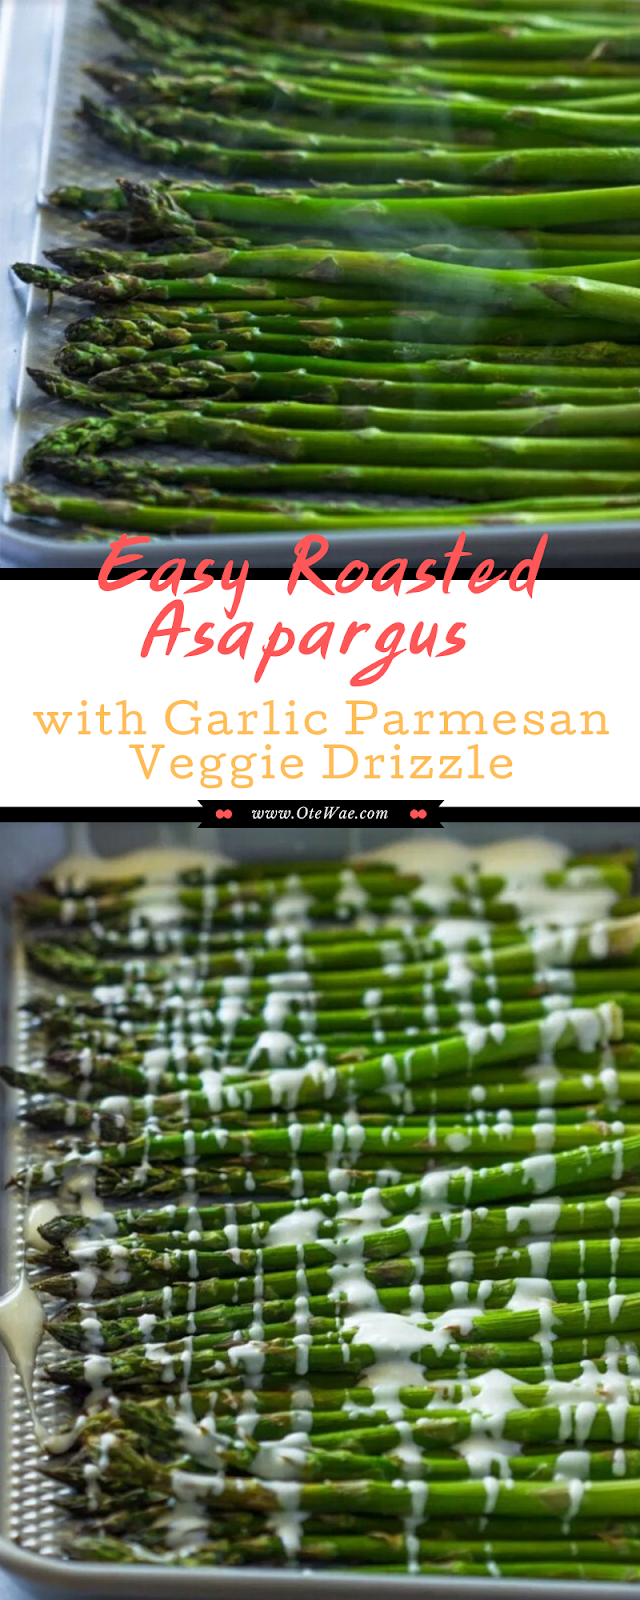 Easy Roasted Asapargus with Garlic Parmesan Veggie Drizzle